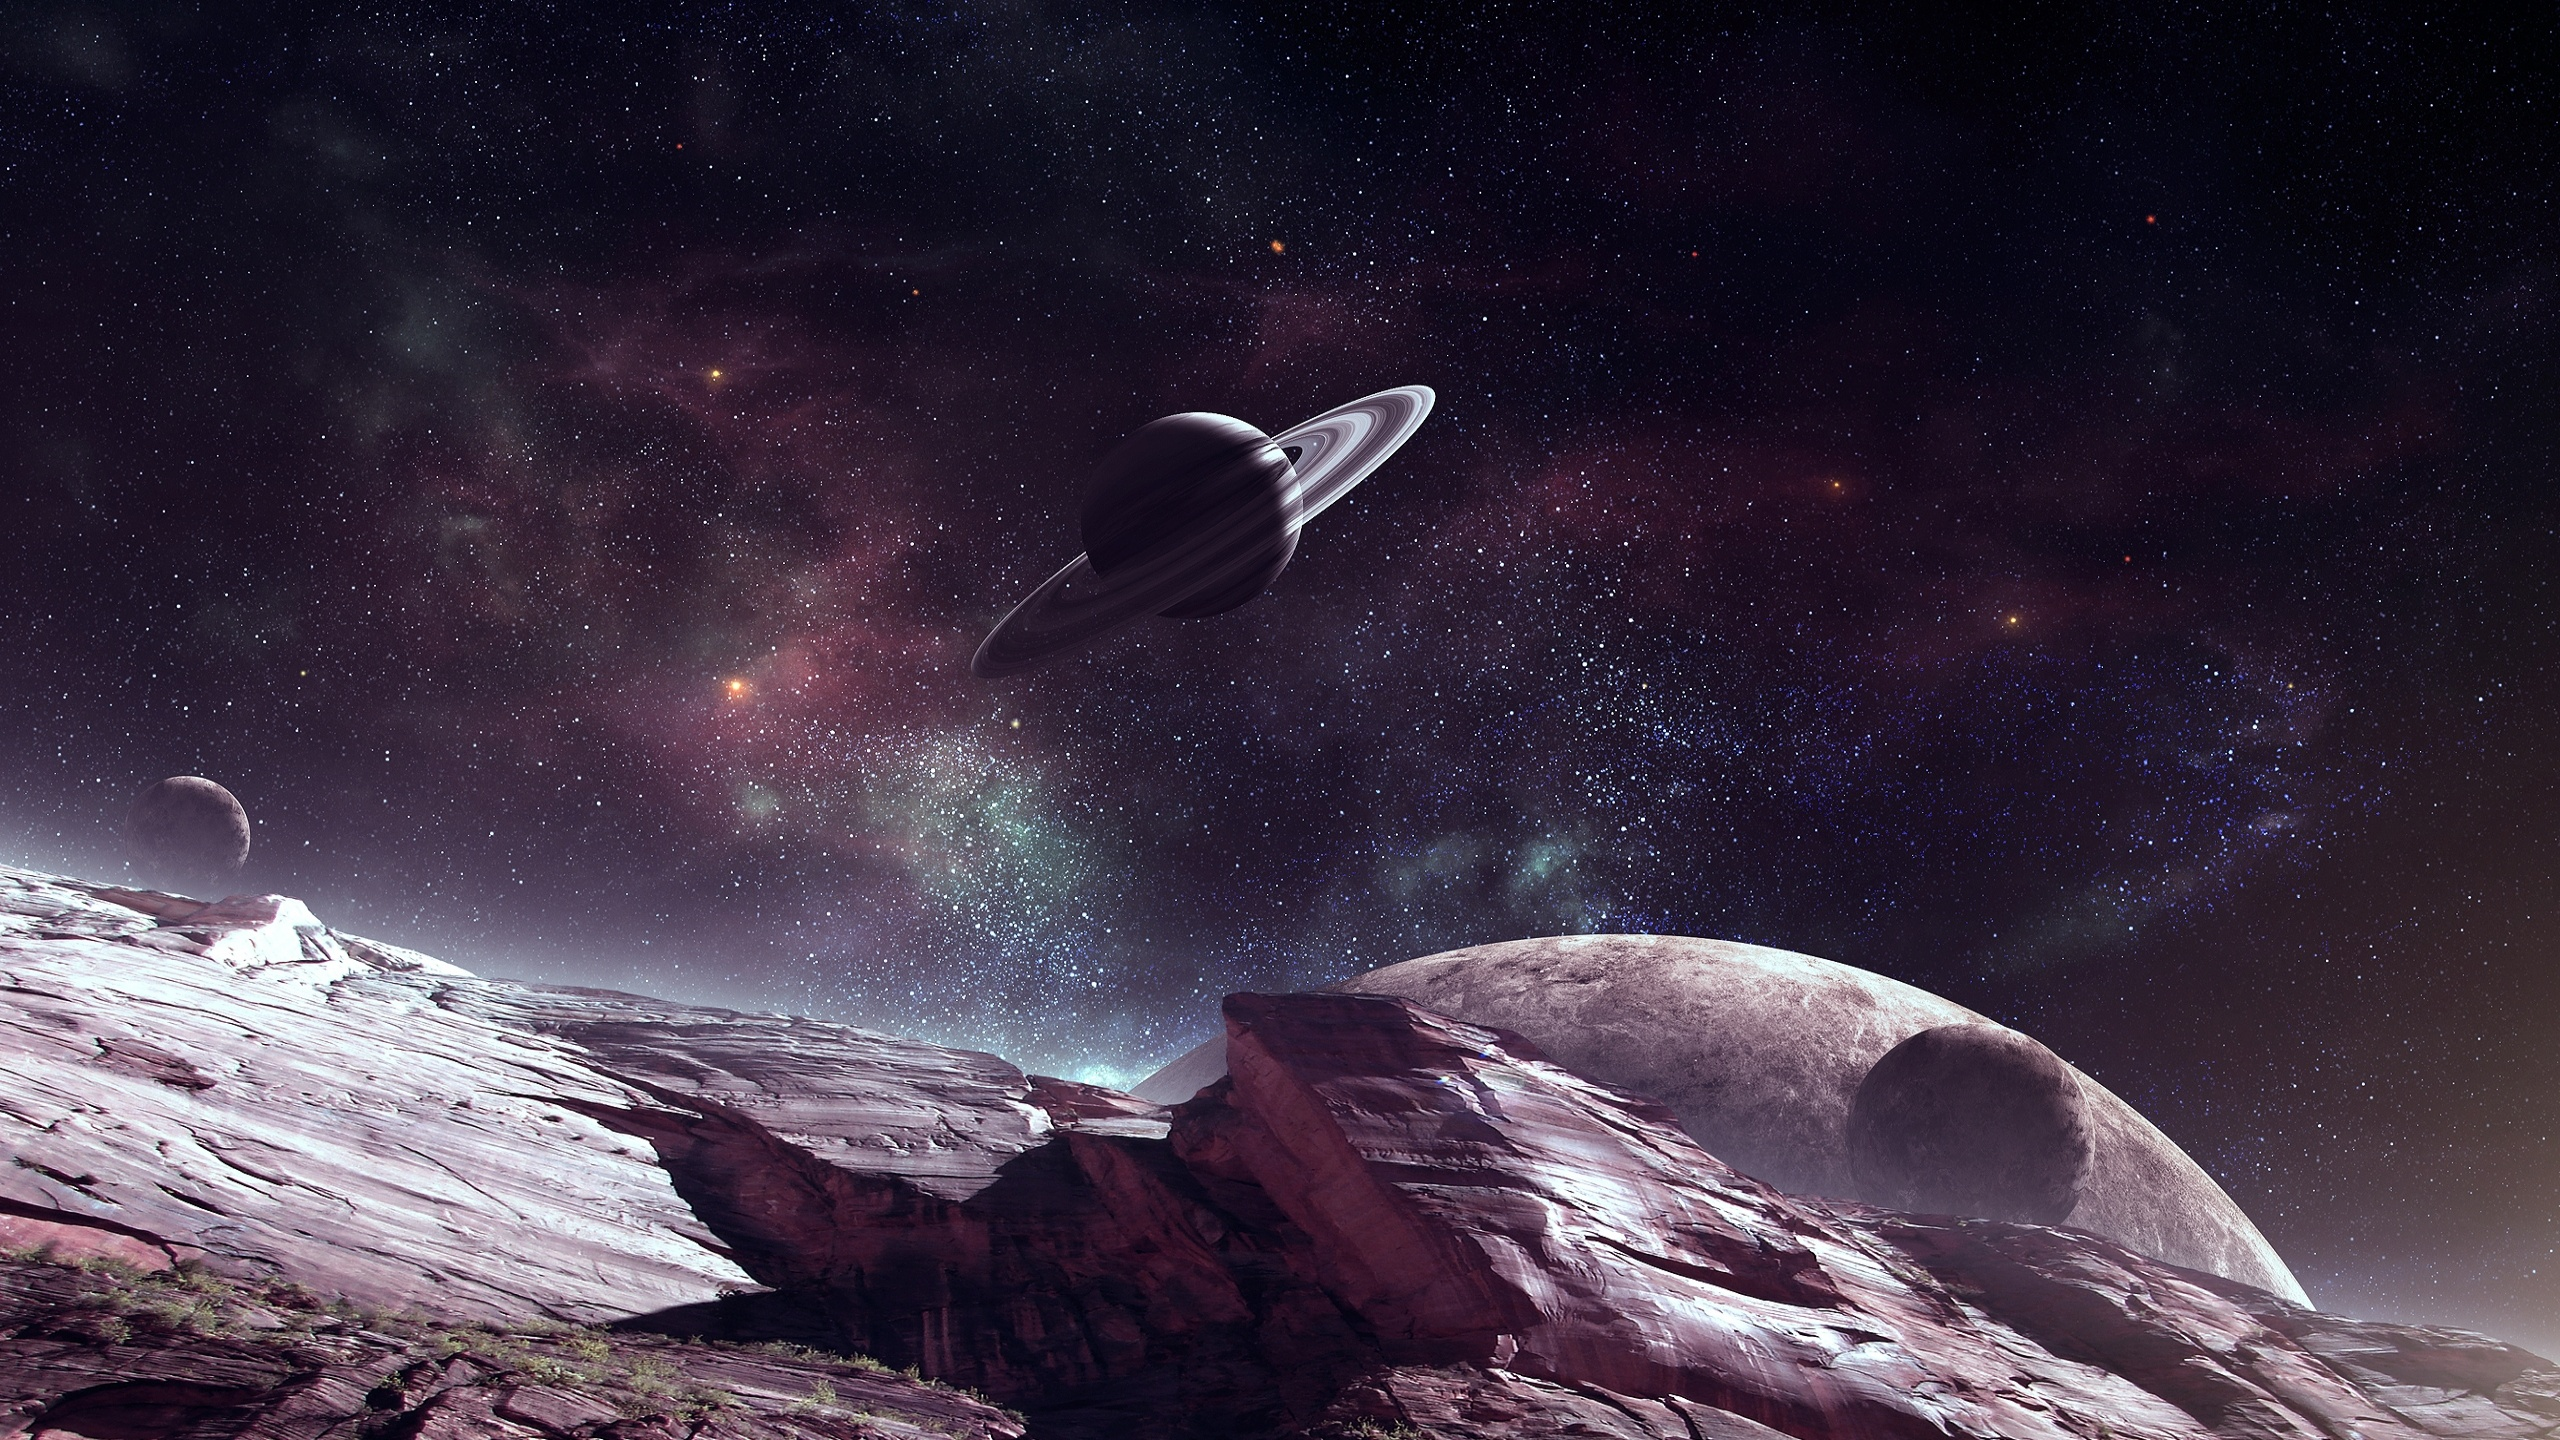 Outer space galaxies wallpapers 2560x1440 1653376 - Space 2560 x 1440 ...